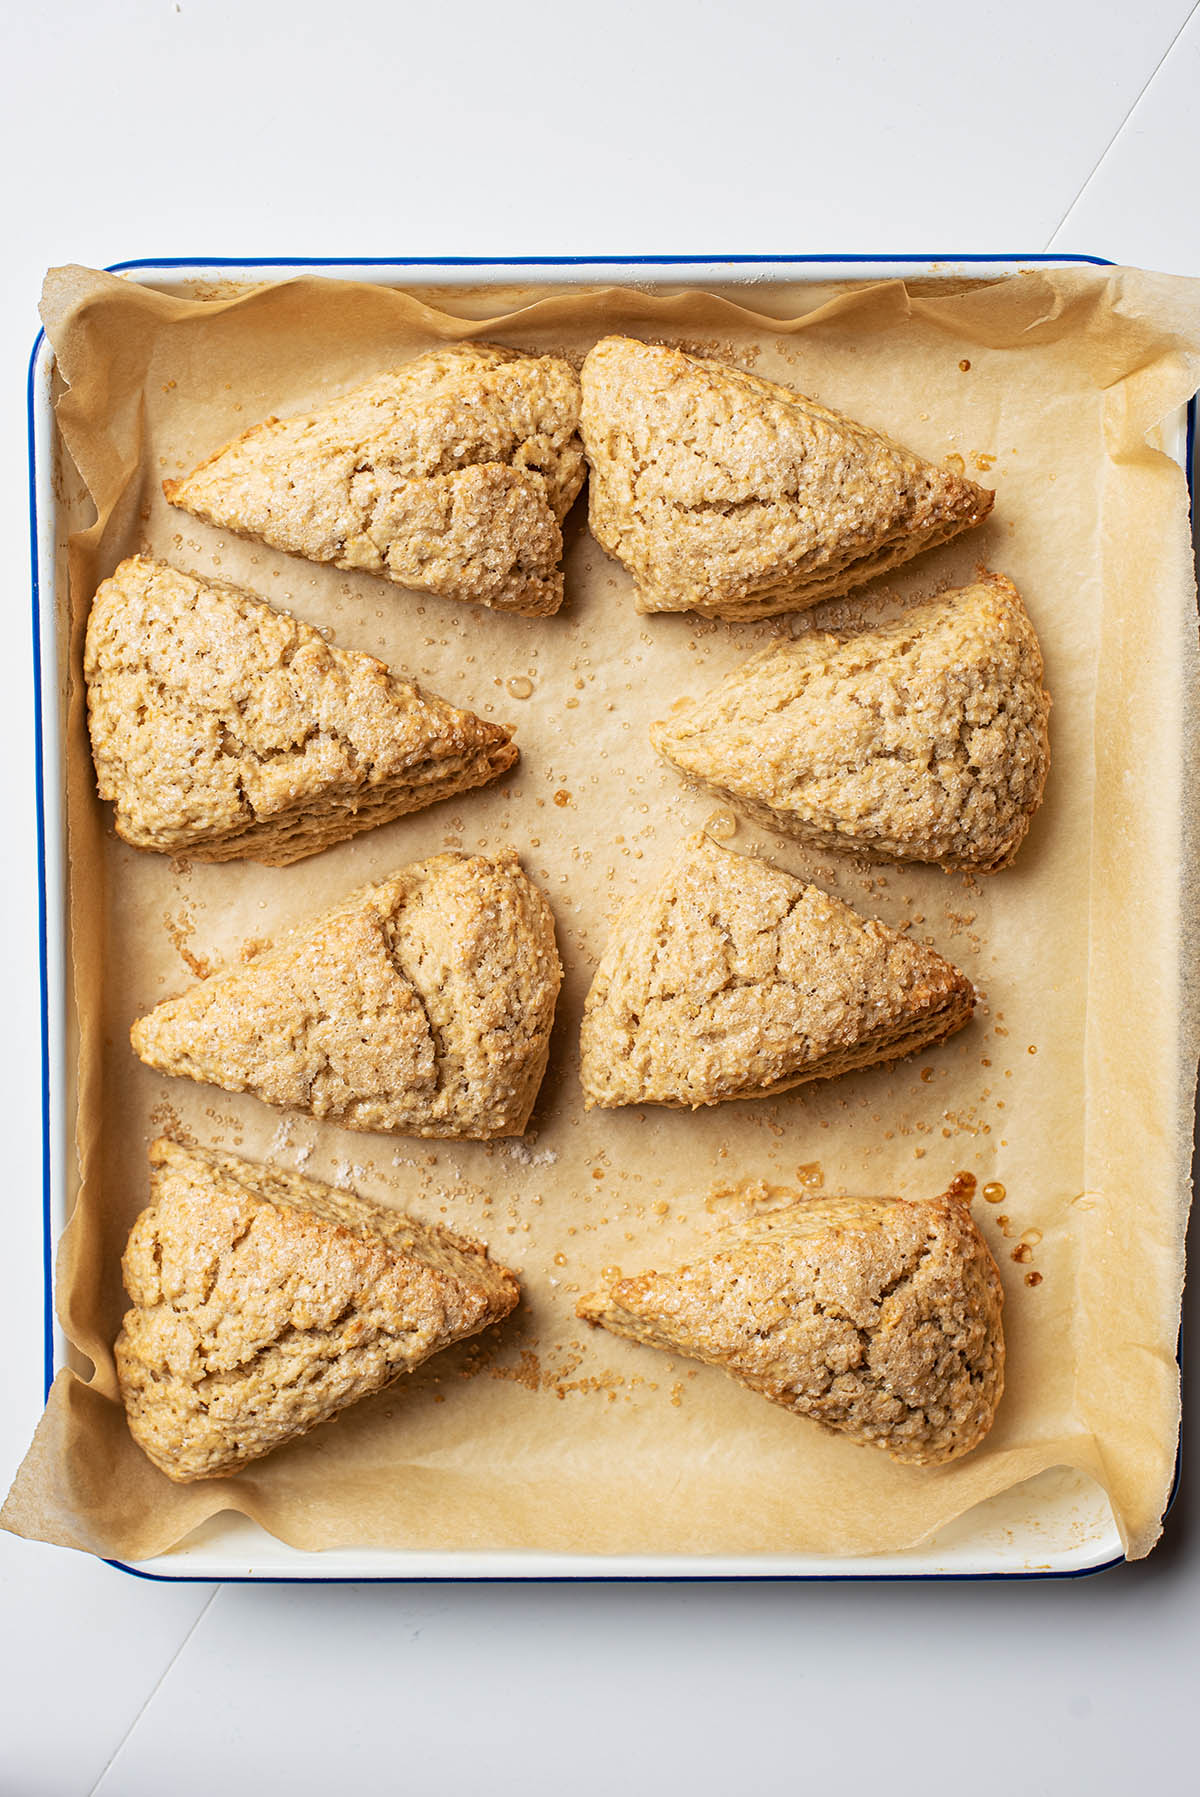 Sugar topped triangular scones on a baking sheet.